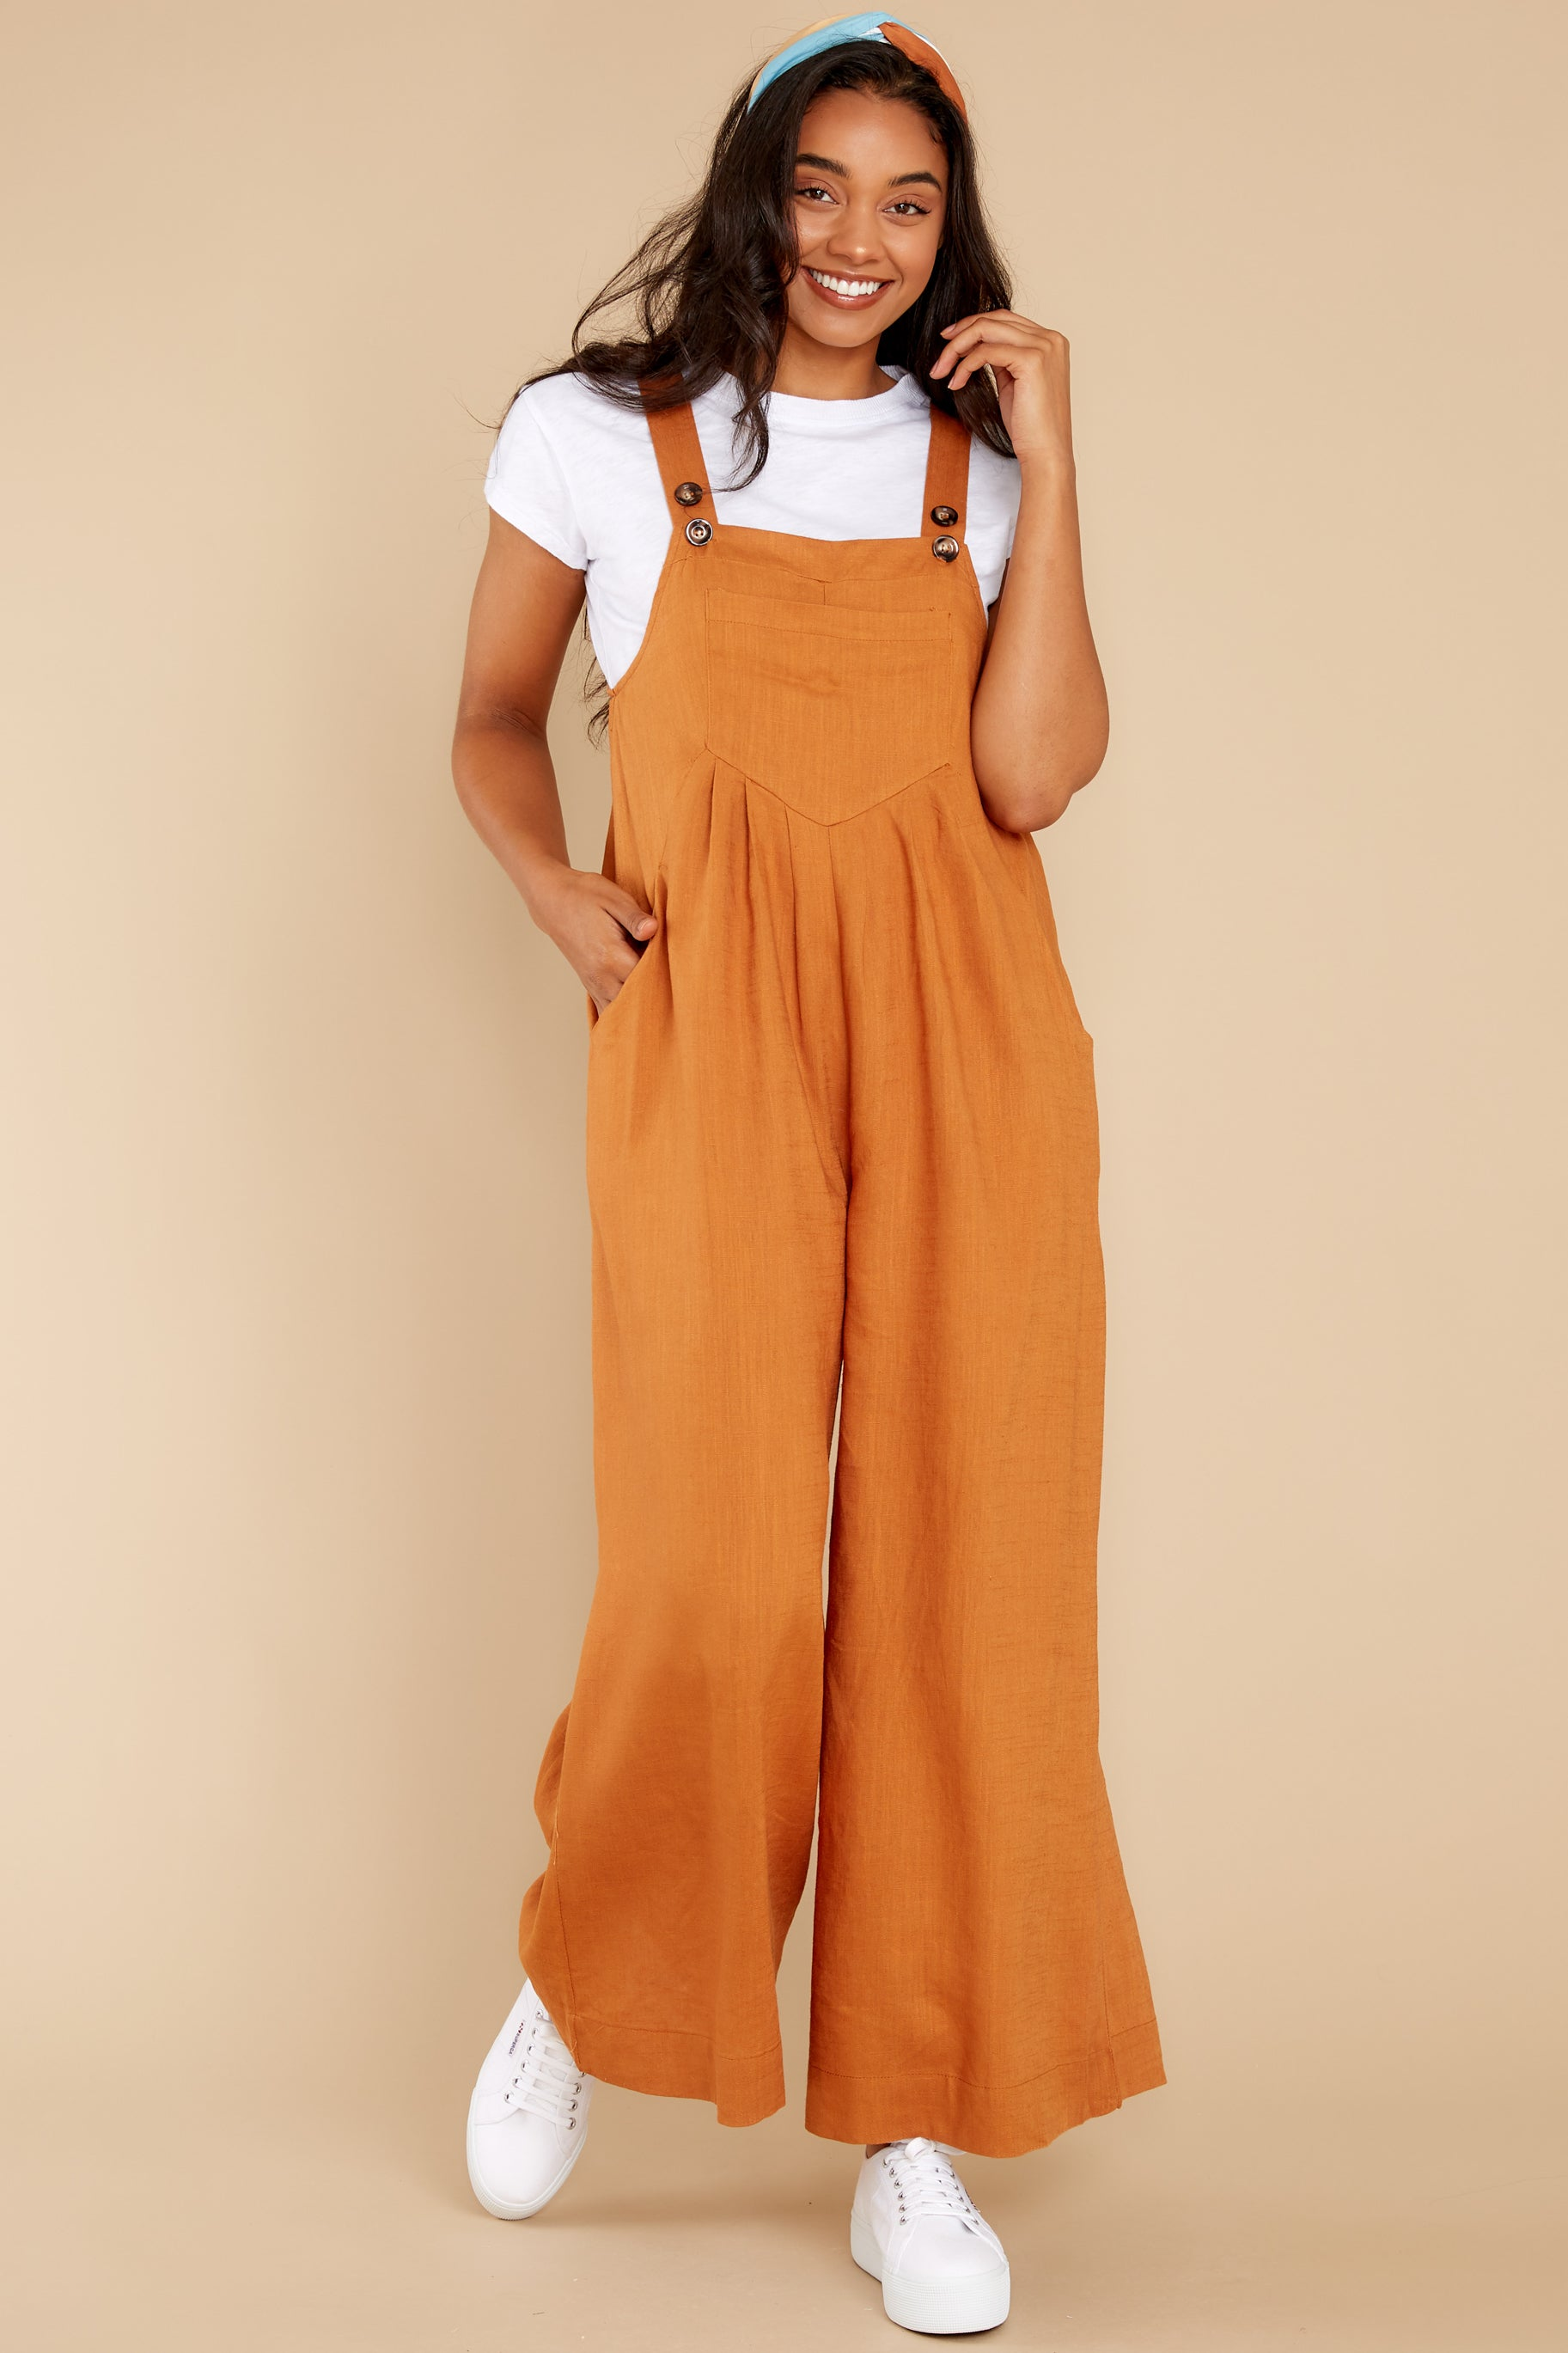 4 In It To Win It Butterscotch Jumpsuit at reddress.com